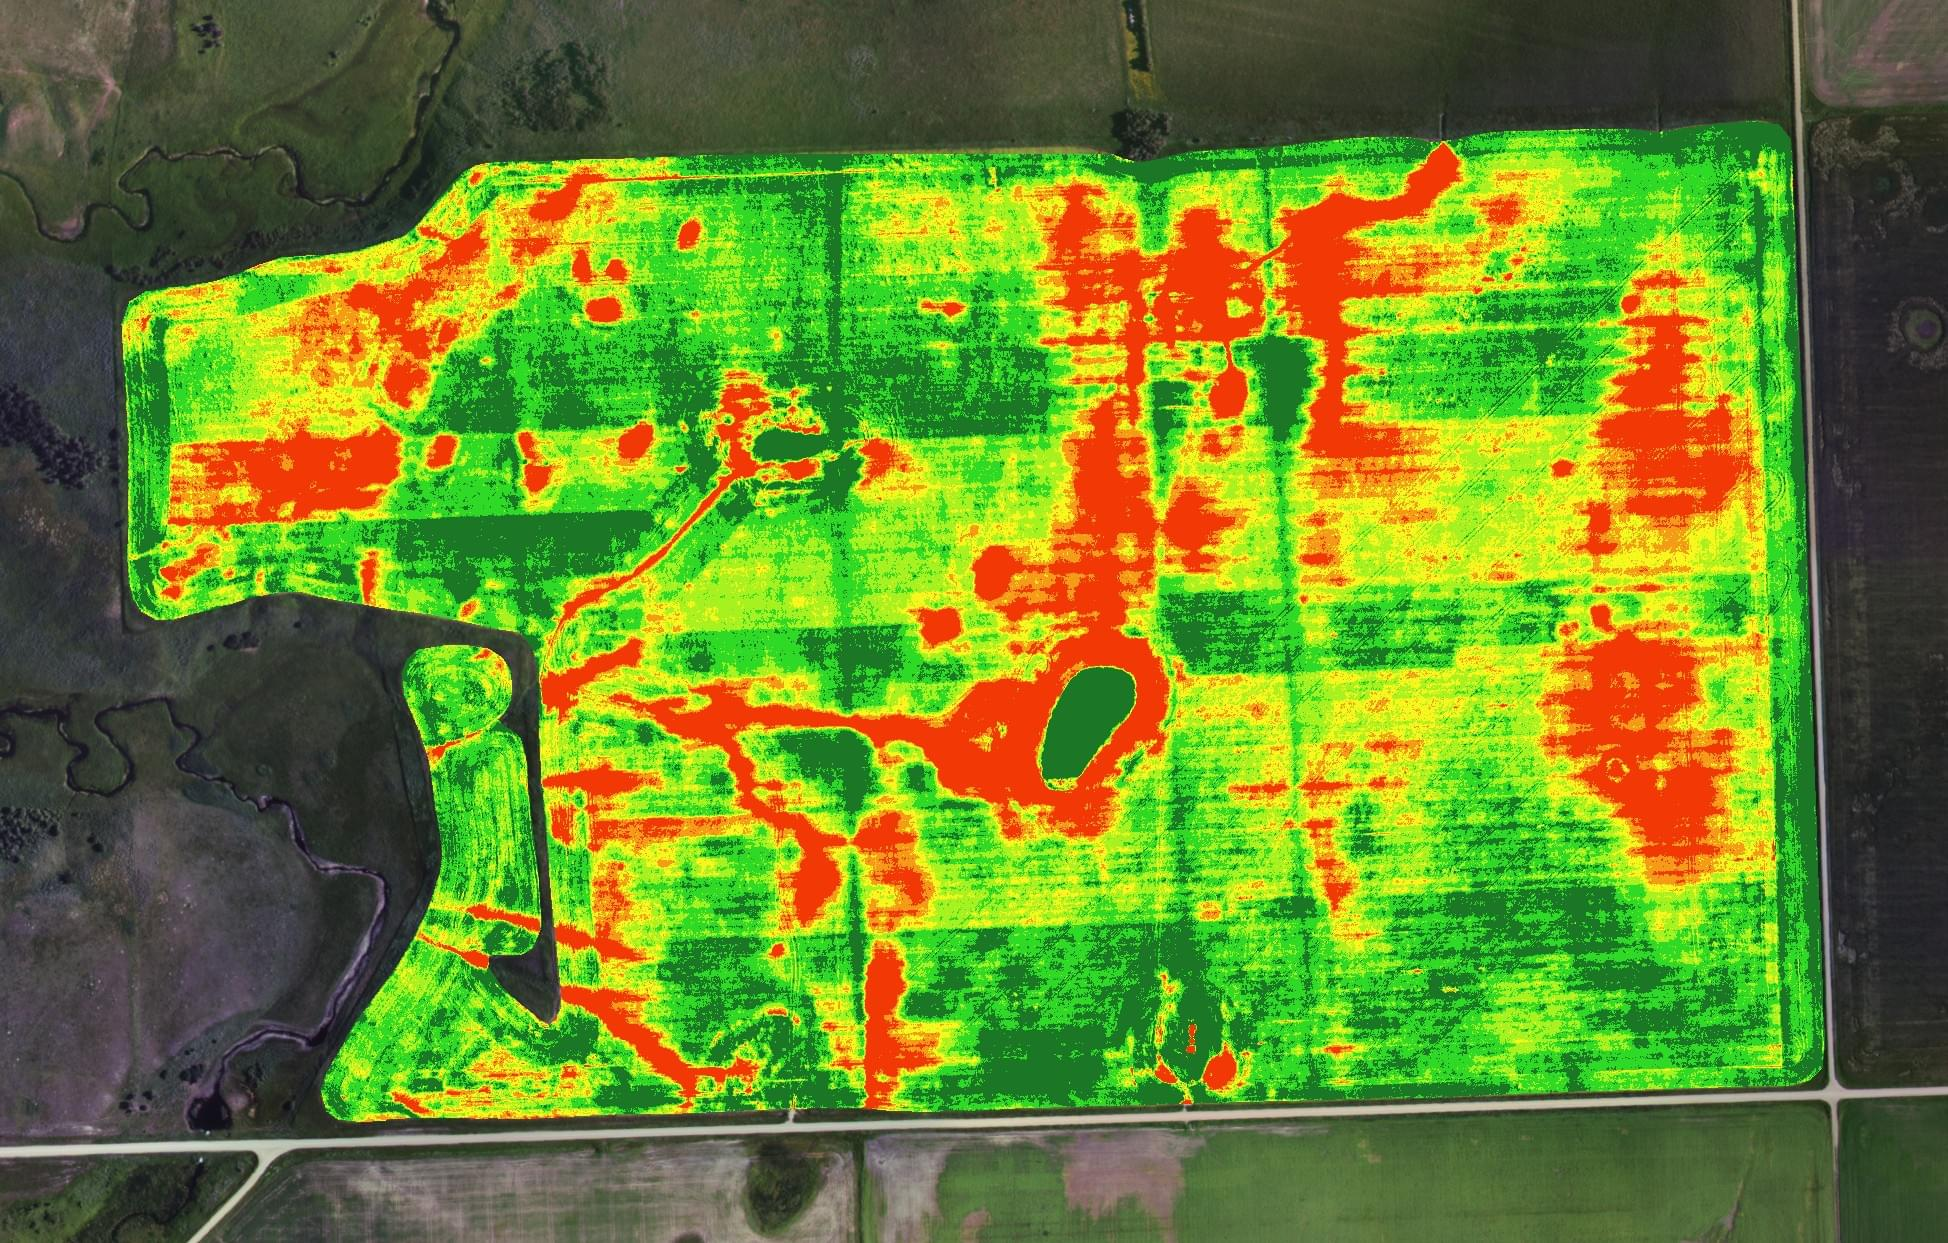 drone for mapping with Precision Agriculture Using Ndvi Analysis With Drones on 1291 besides Watch moreover Emergency Services Drone DJI Thermal Matrice 600 Pro Kit p 1642 together with Dji Phantom 2 Quadcopter With Gimbal furthermore Number Of Black People Killed By Us Police Still No Stats 1.